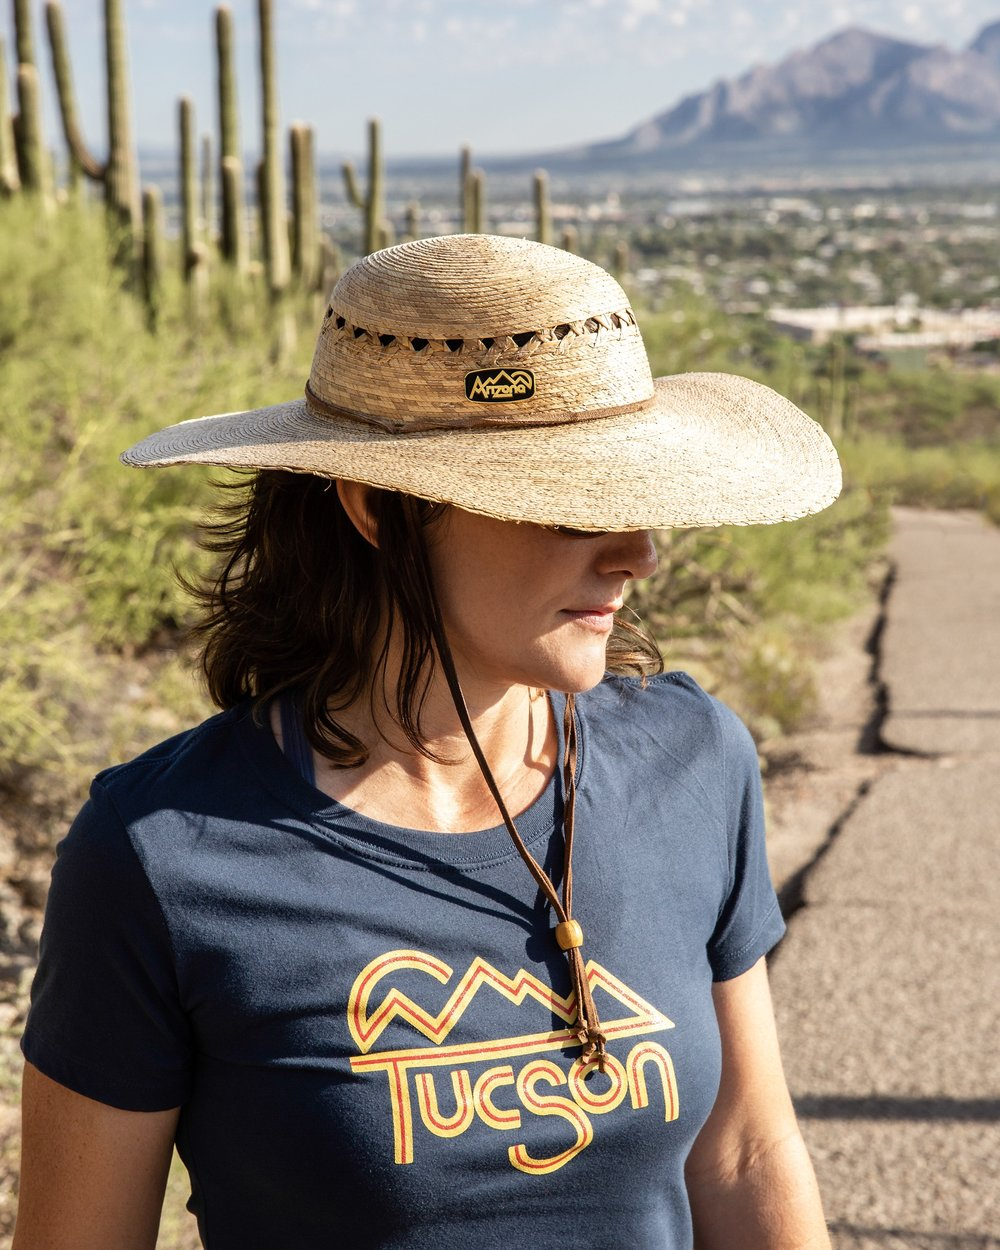 Tucson Women's Shirt